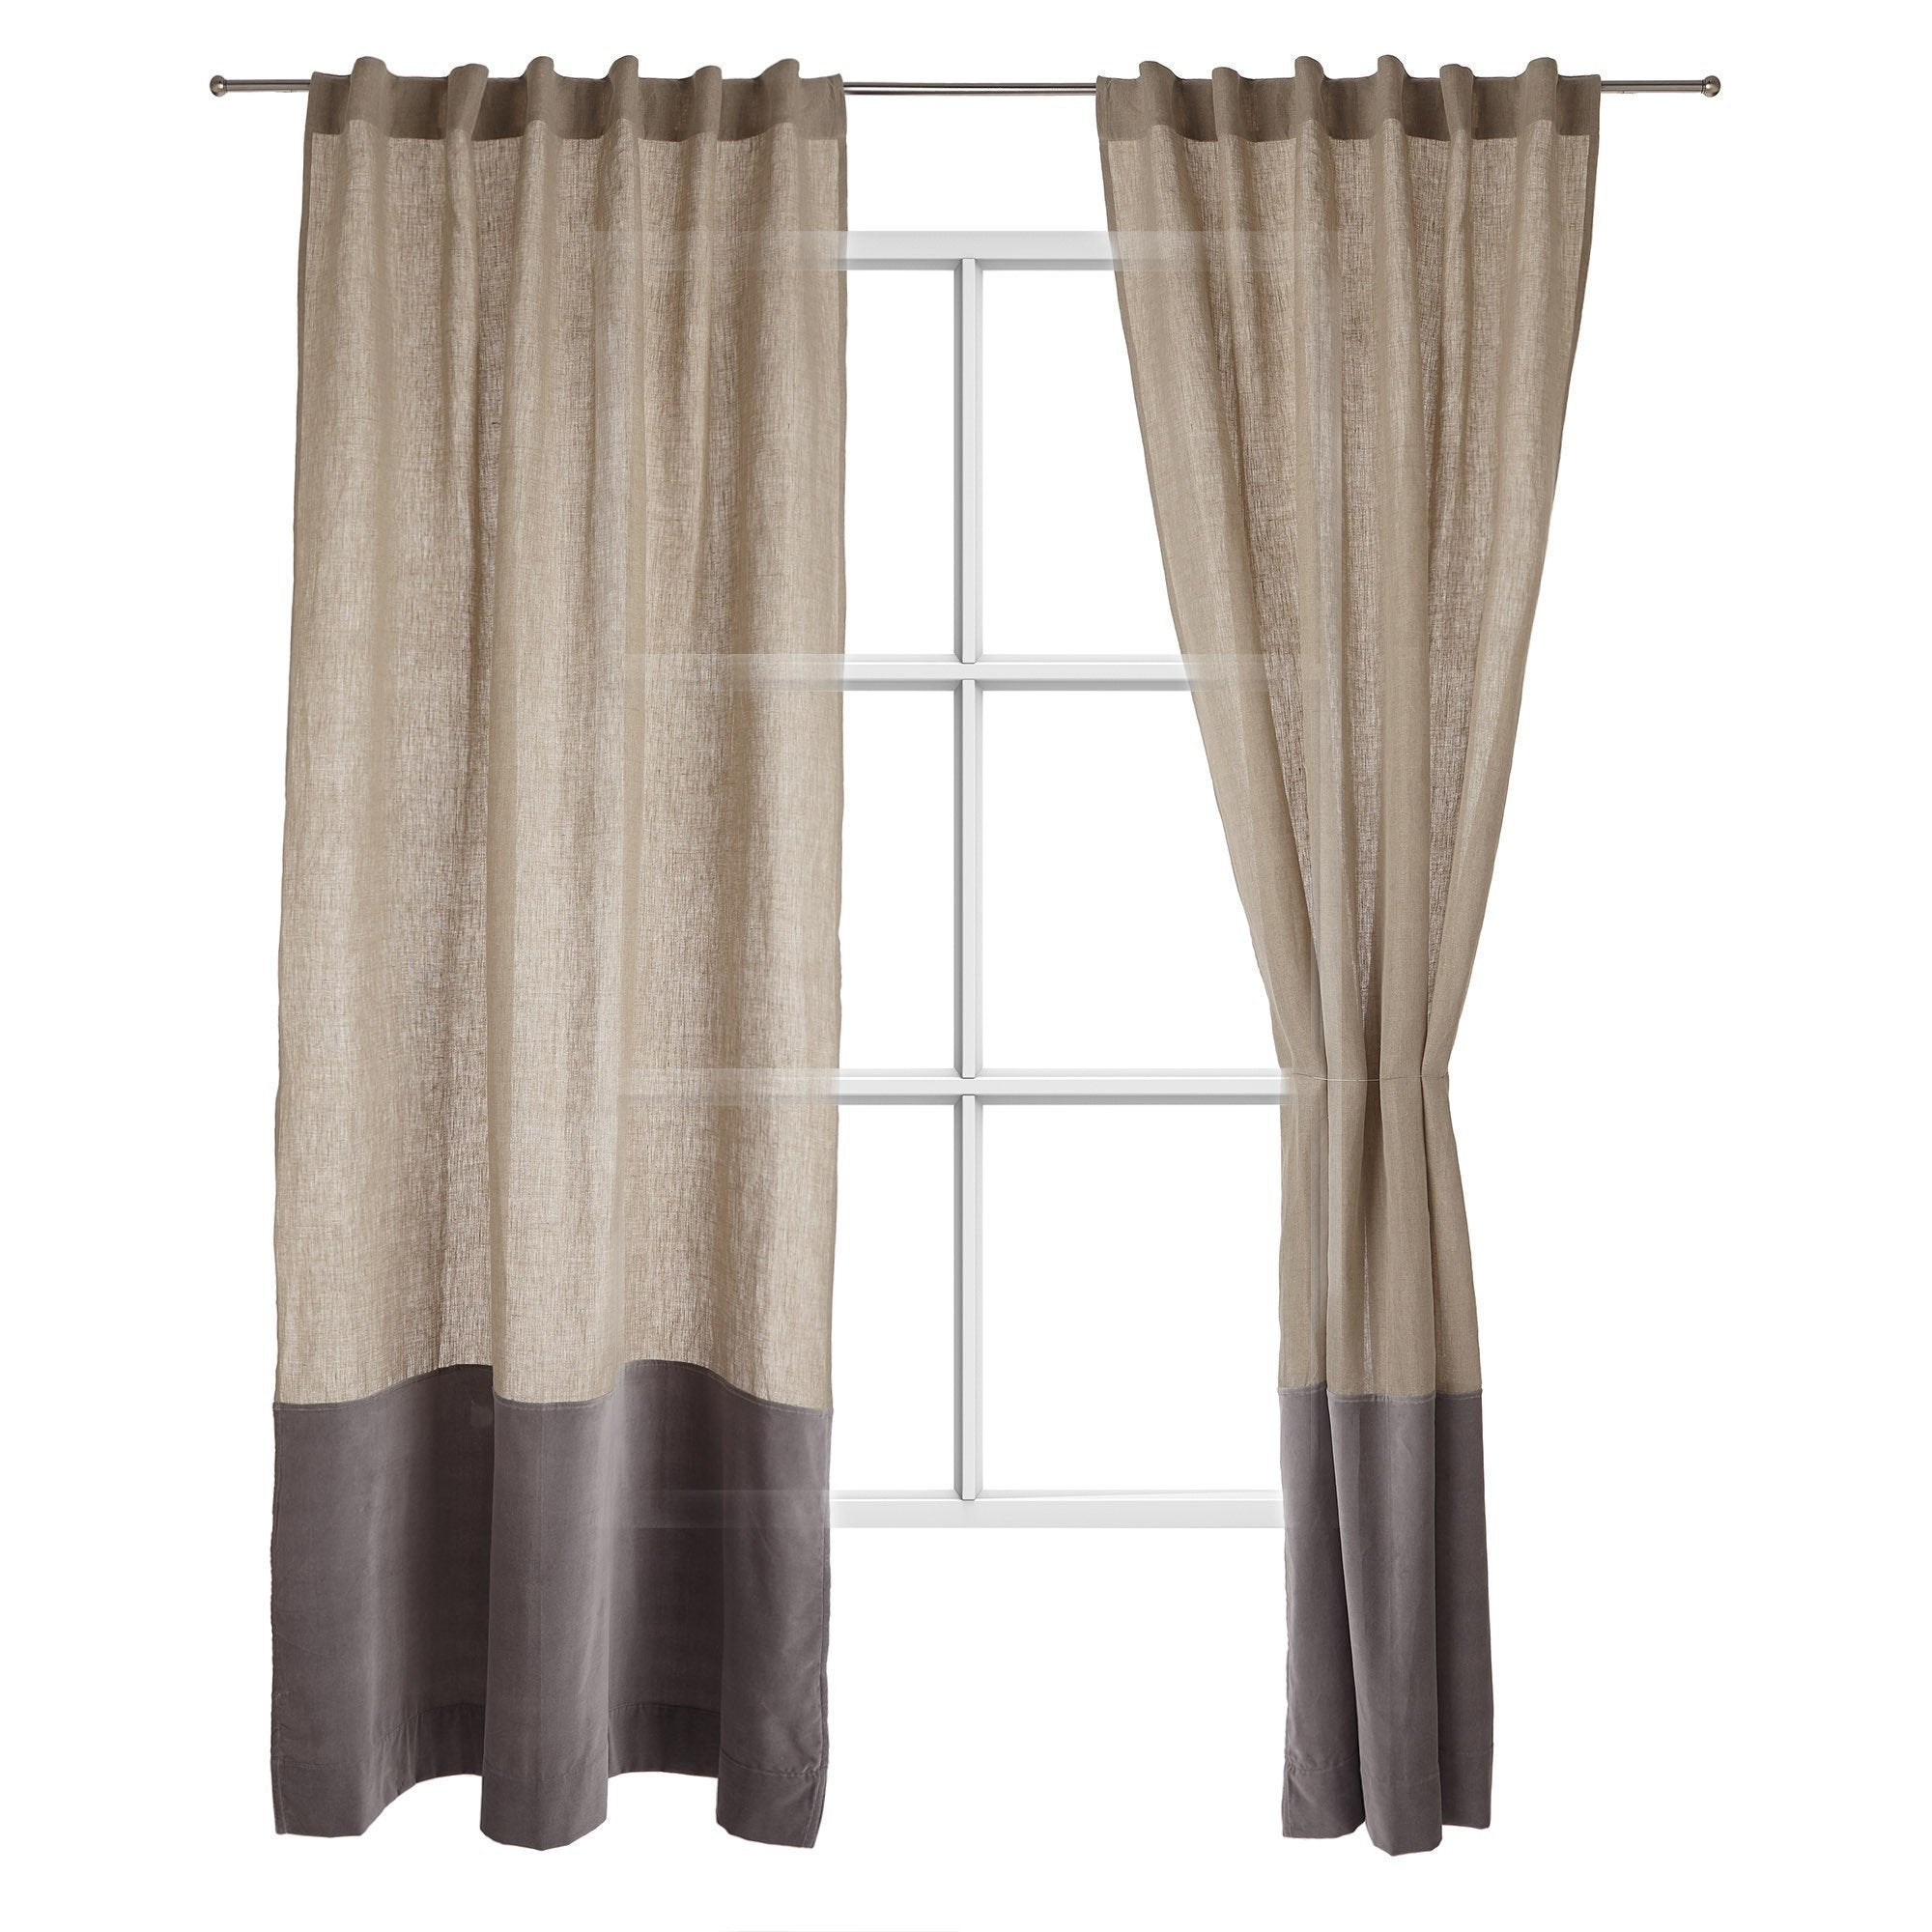 Saveli Curtain natural & grey, 100% linen & 100% cotton